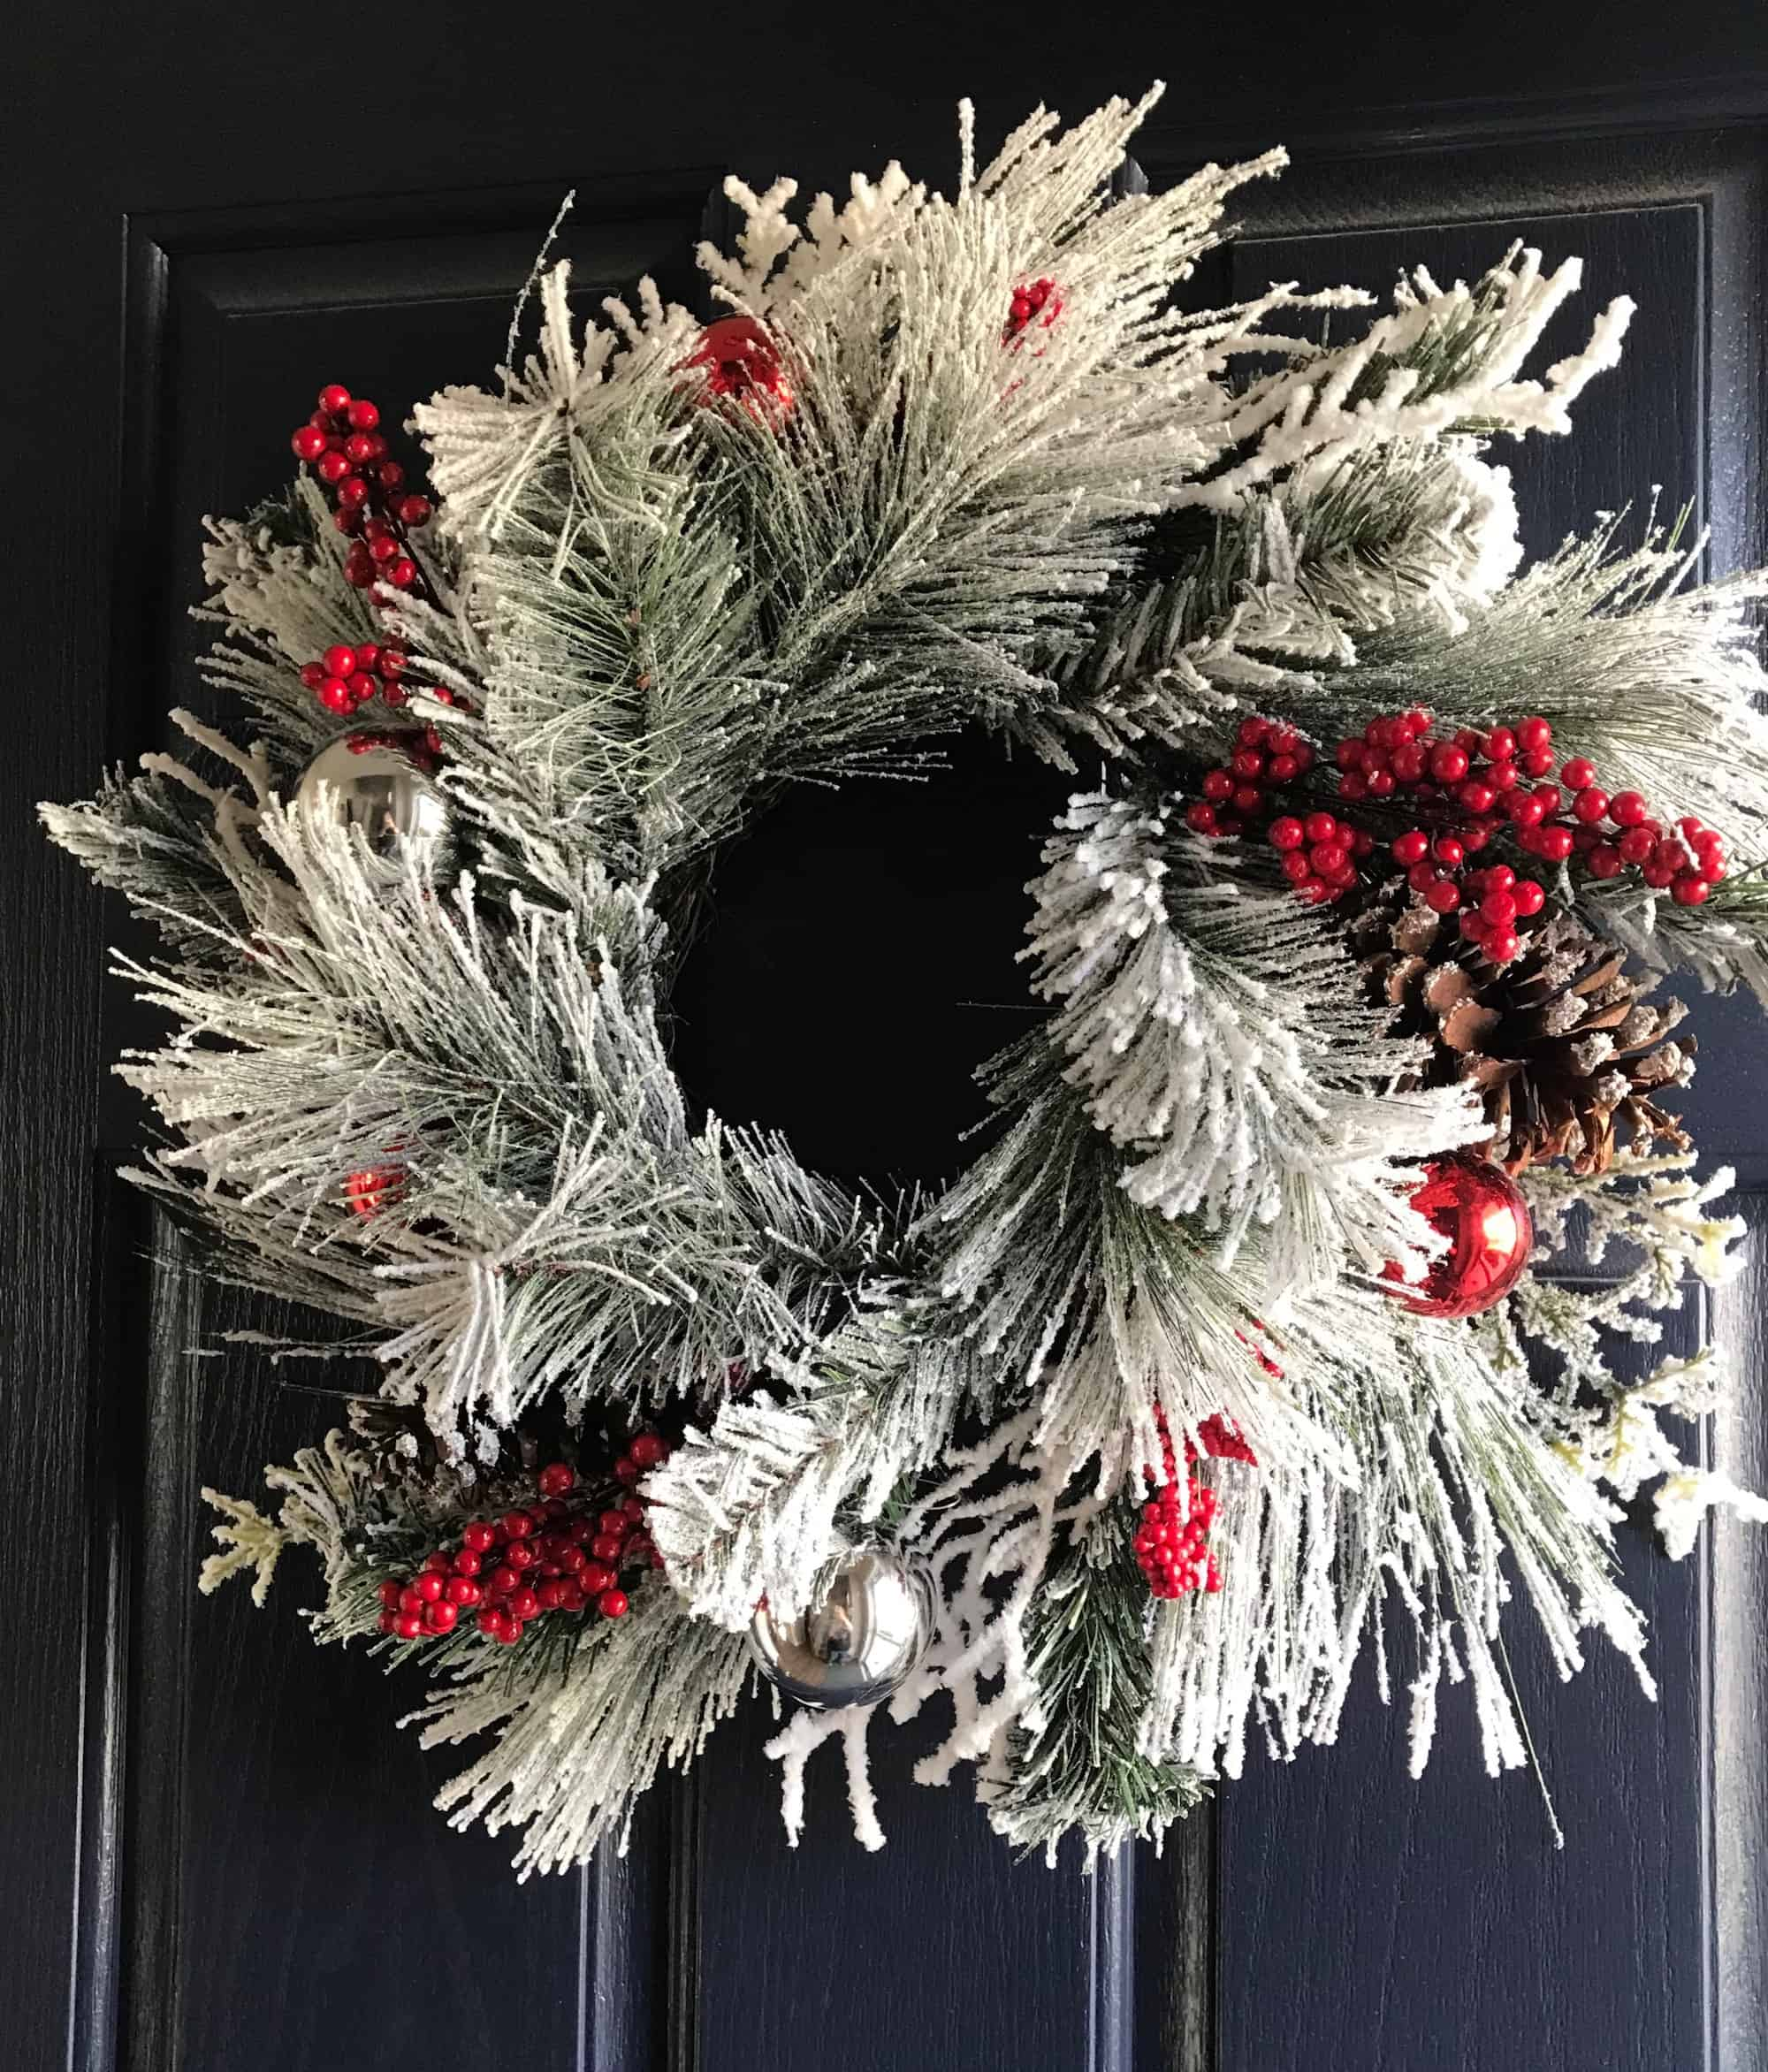 Flocked Christmas wreath with red berries